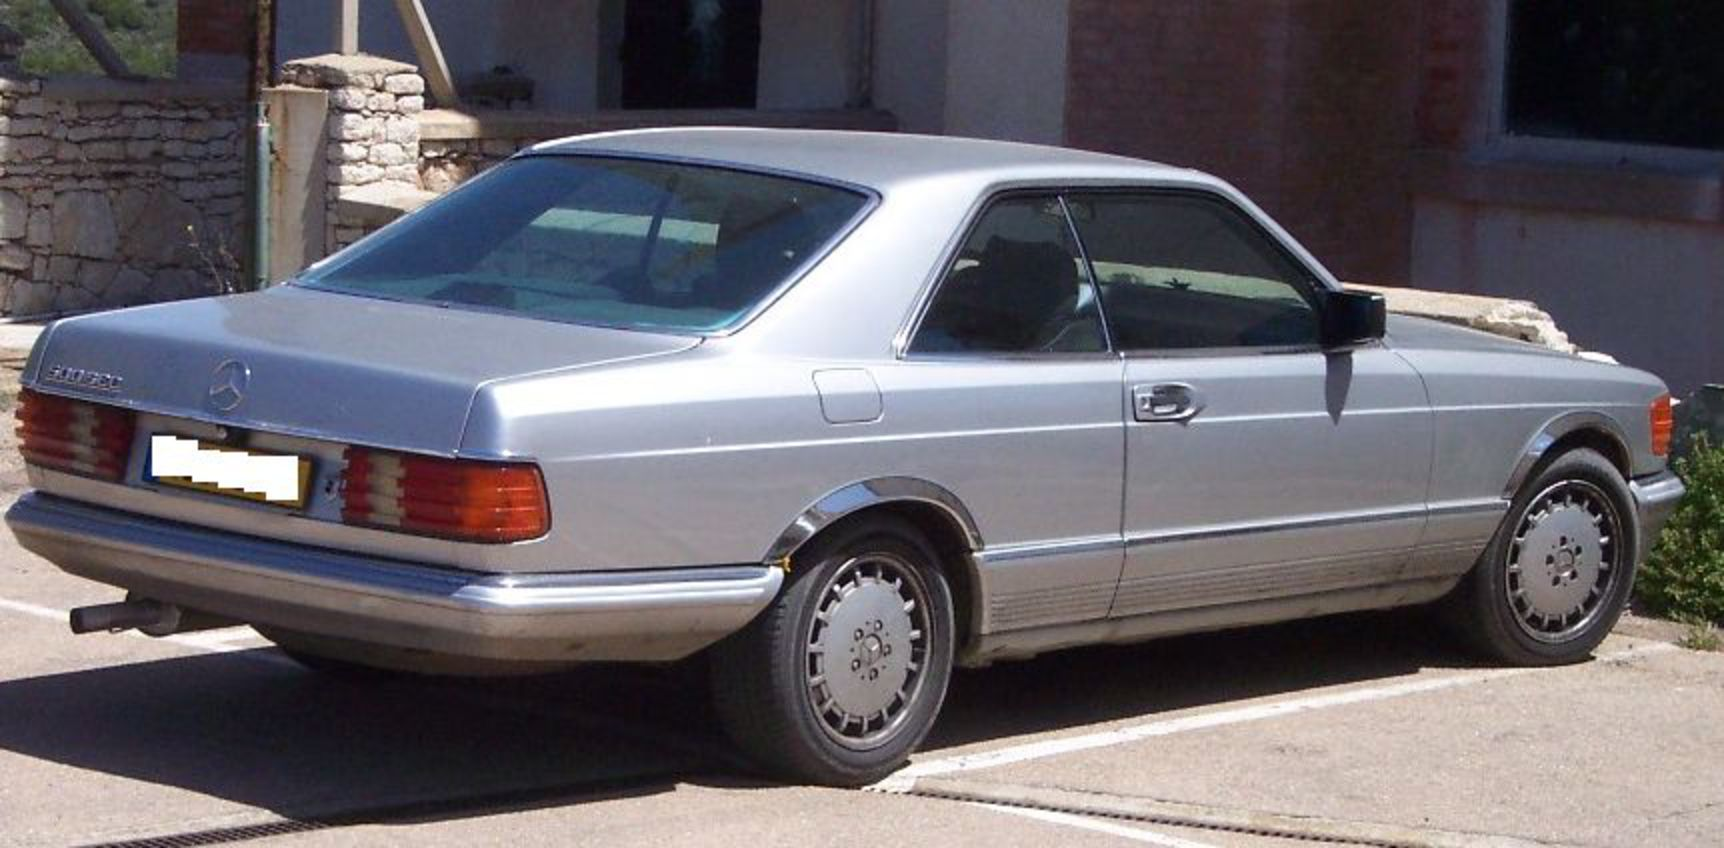 File:Mercedes Benz 500 SEC silver hr.jpg - Wikimedia Commons